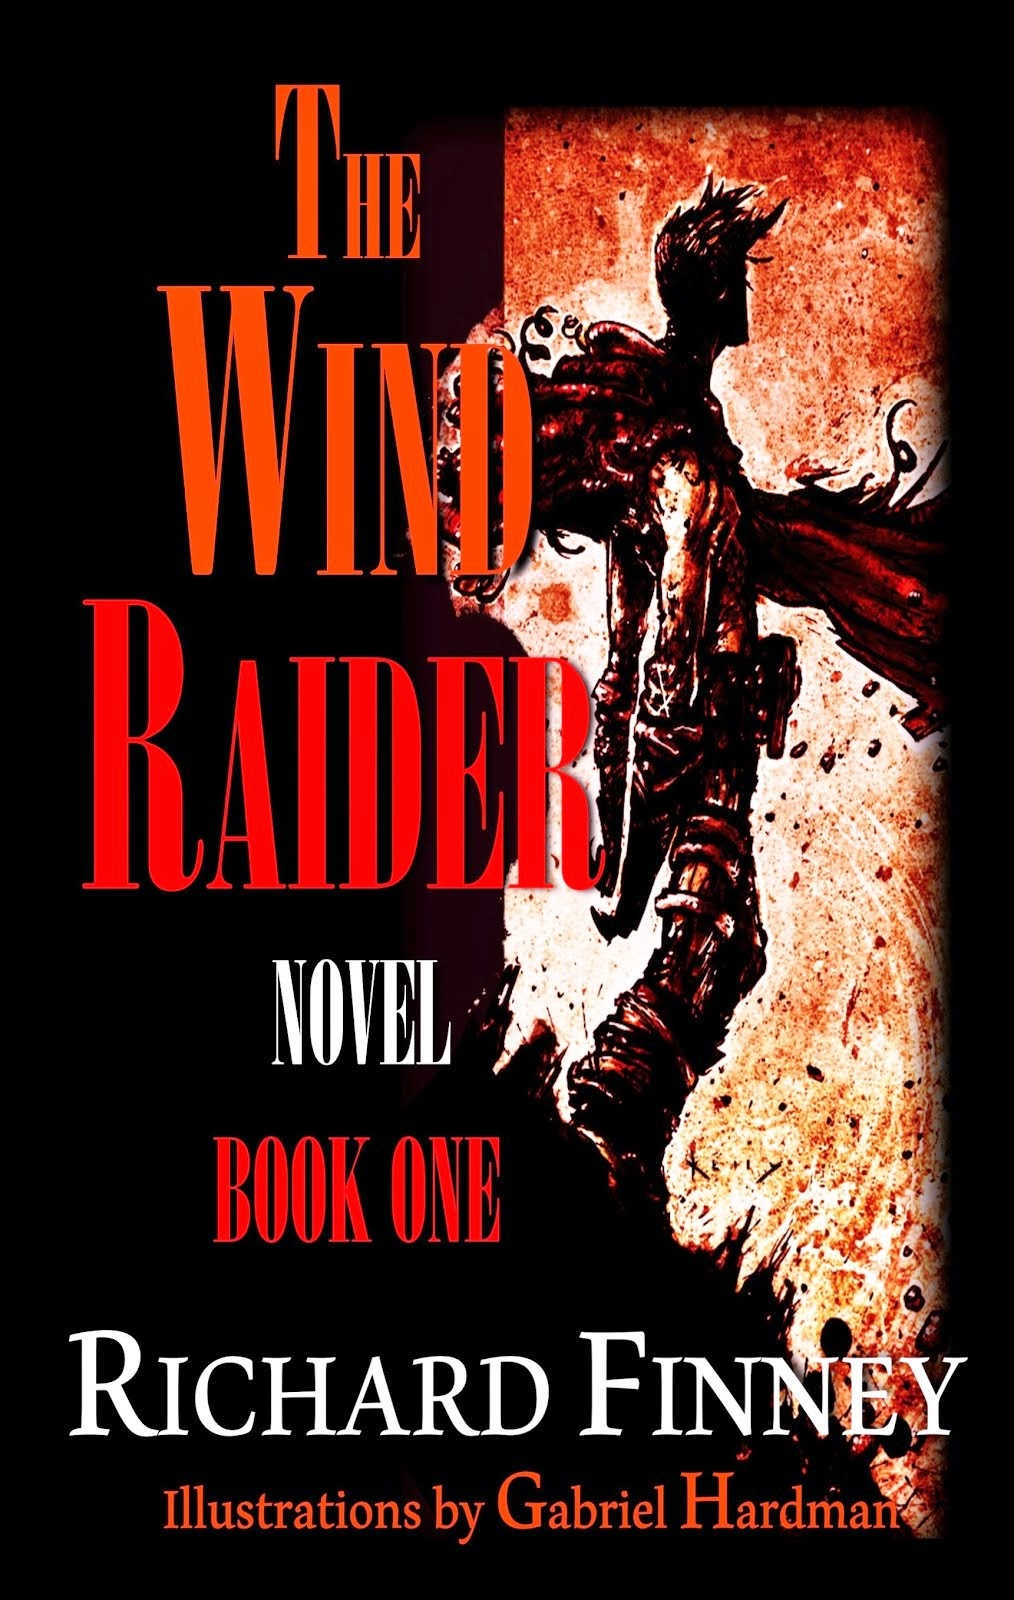 THE OFFICIAL WIND RAIDER PAGE